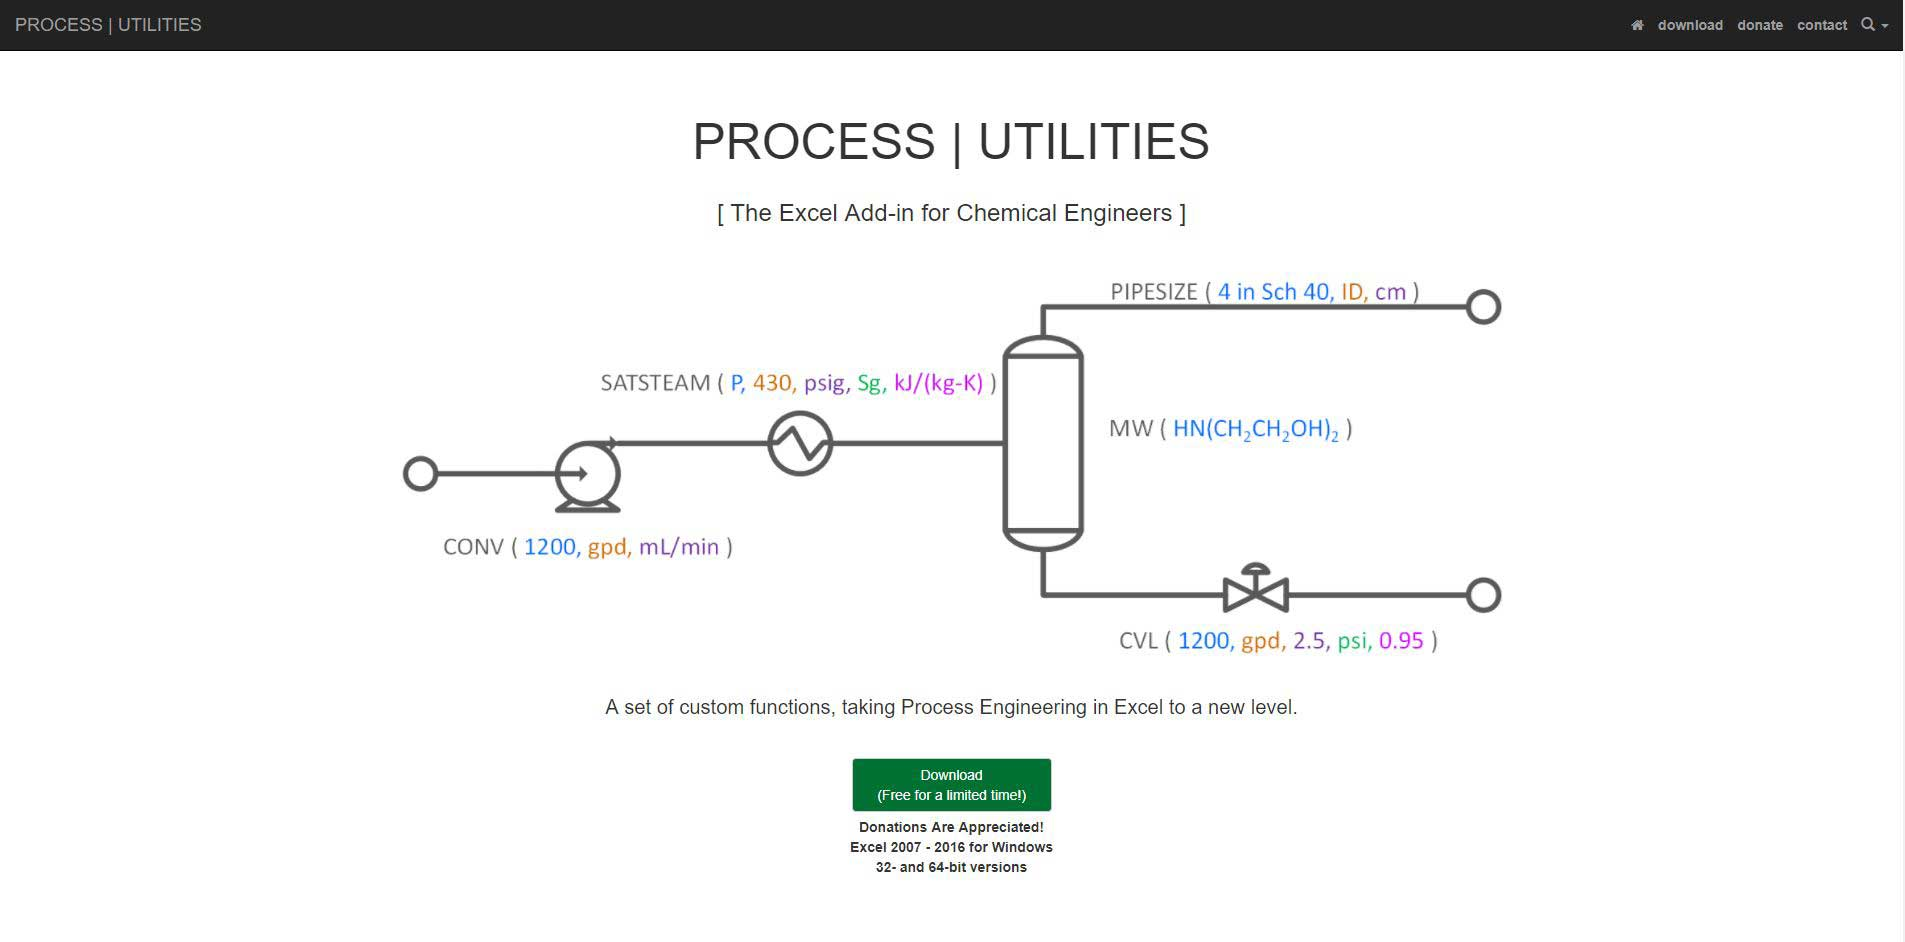 Process Utilities Excel Addon for Chemical Engineering